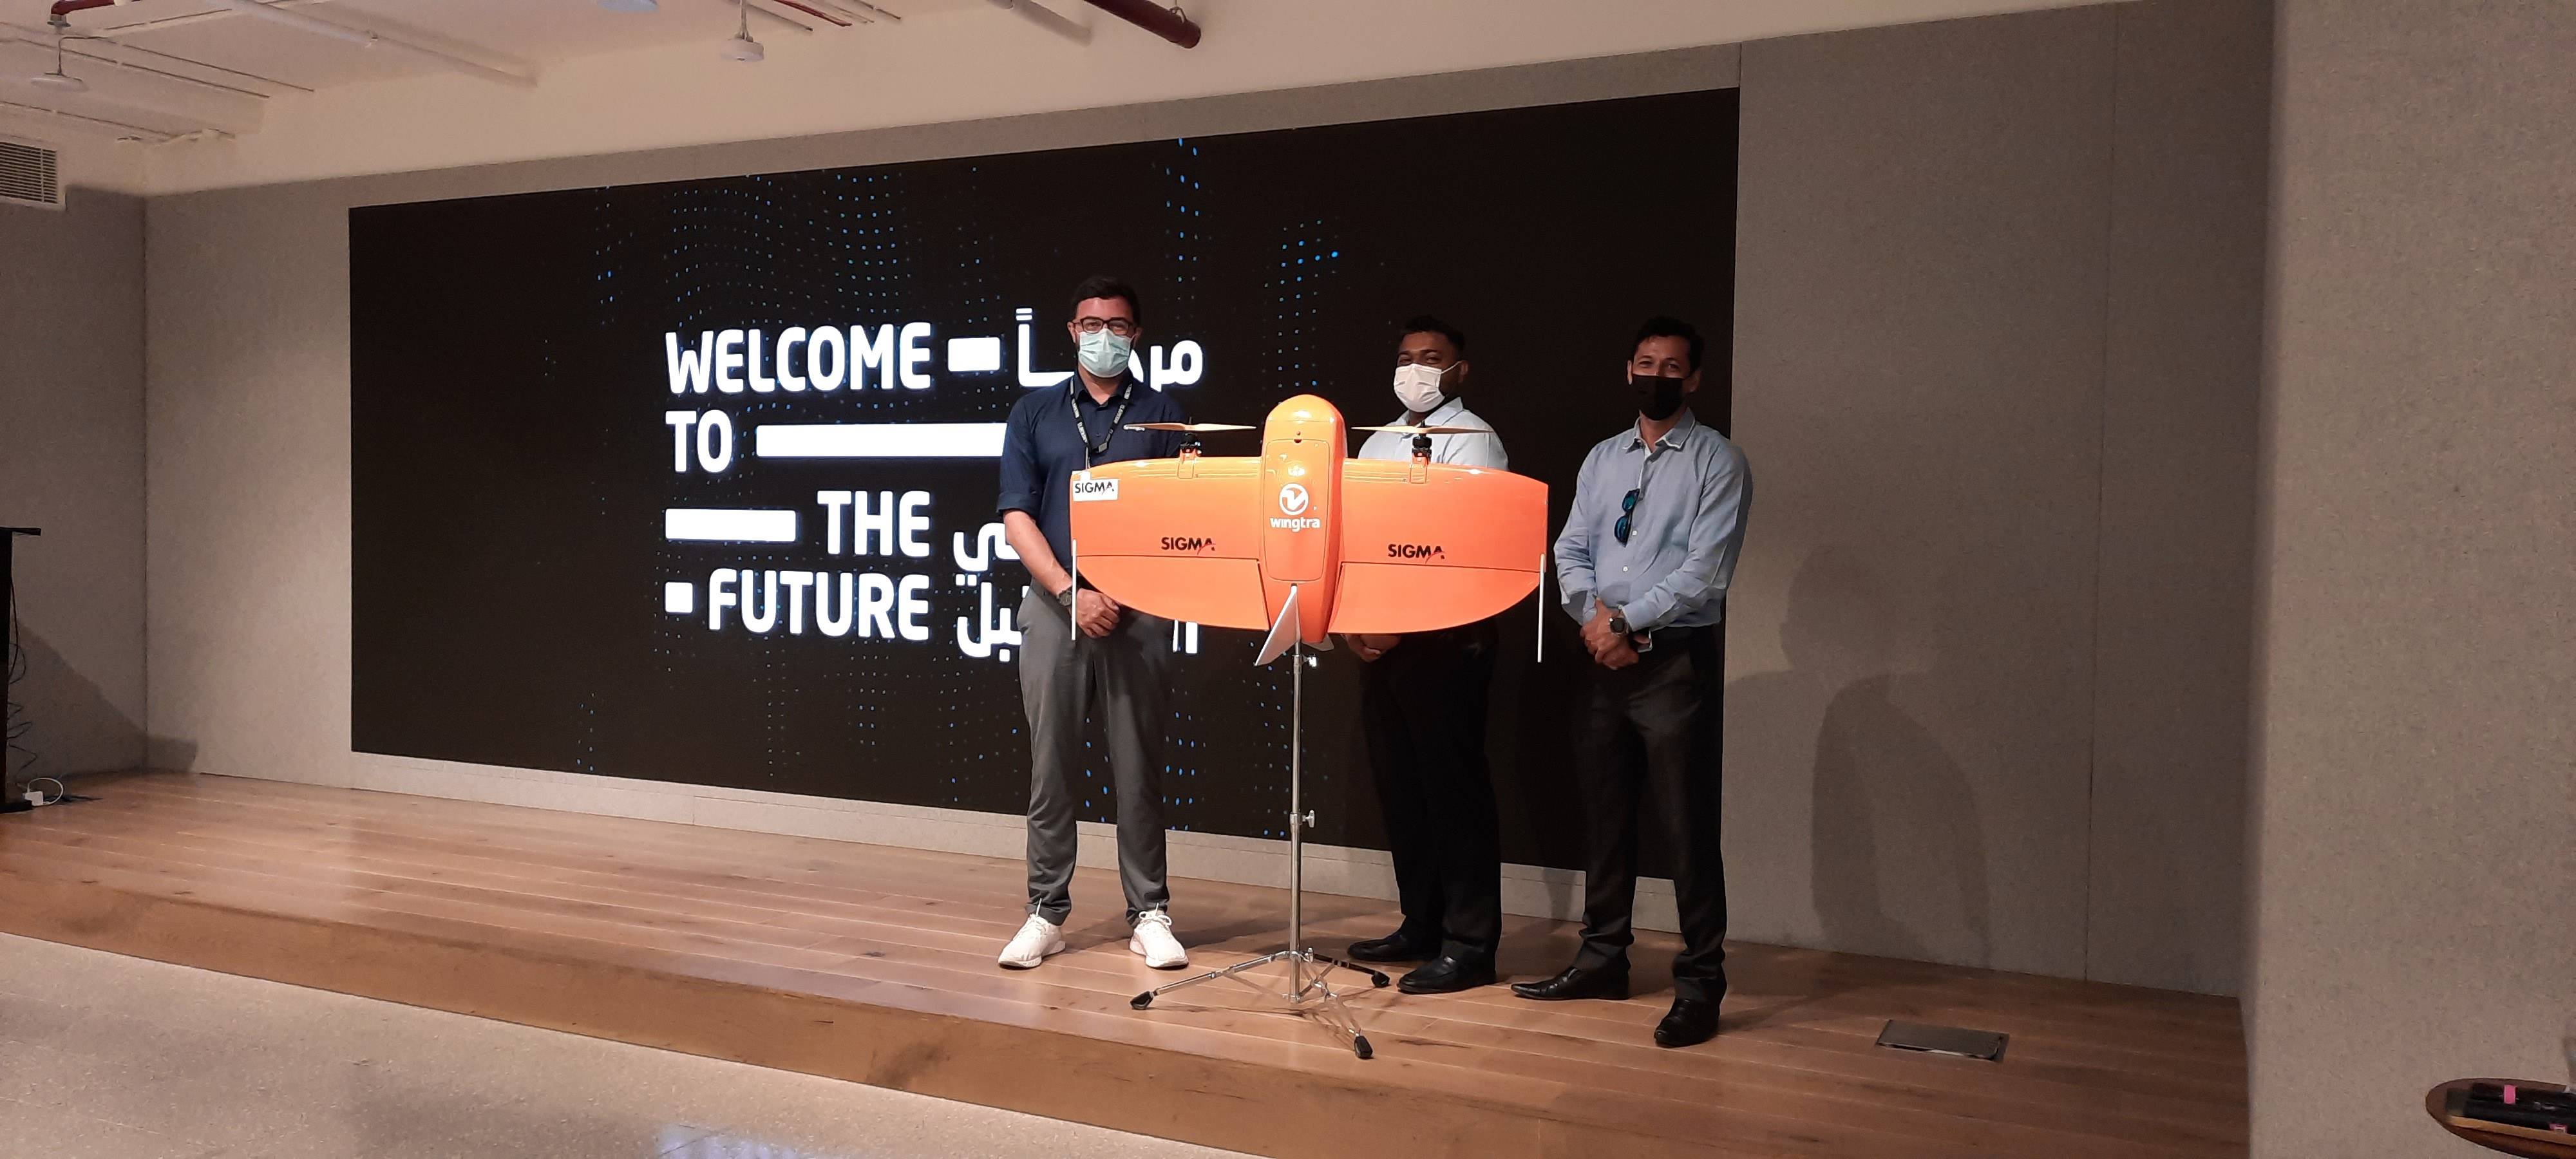 Wingtra One is among 5 finalist shortlisted for Dubai Future Accelerators program